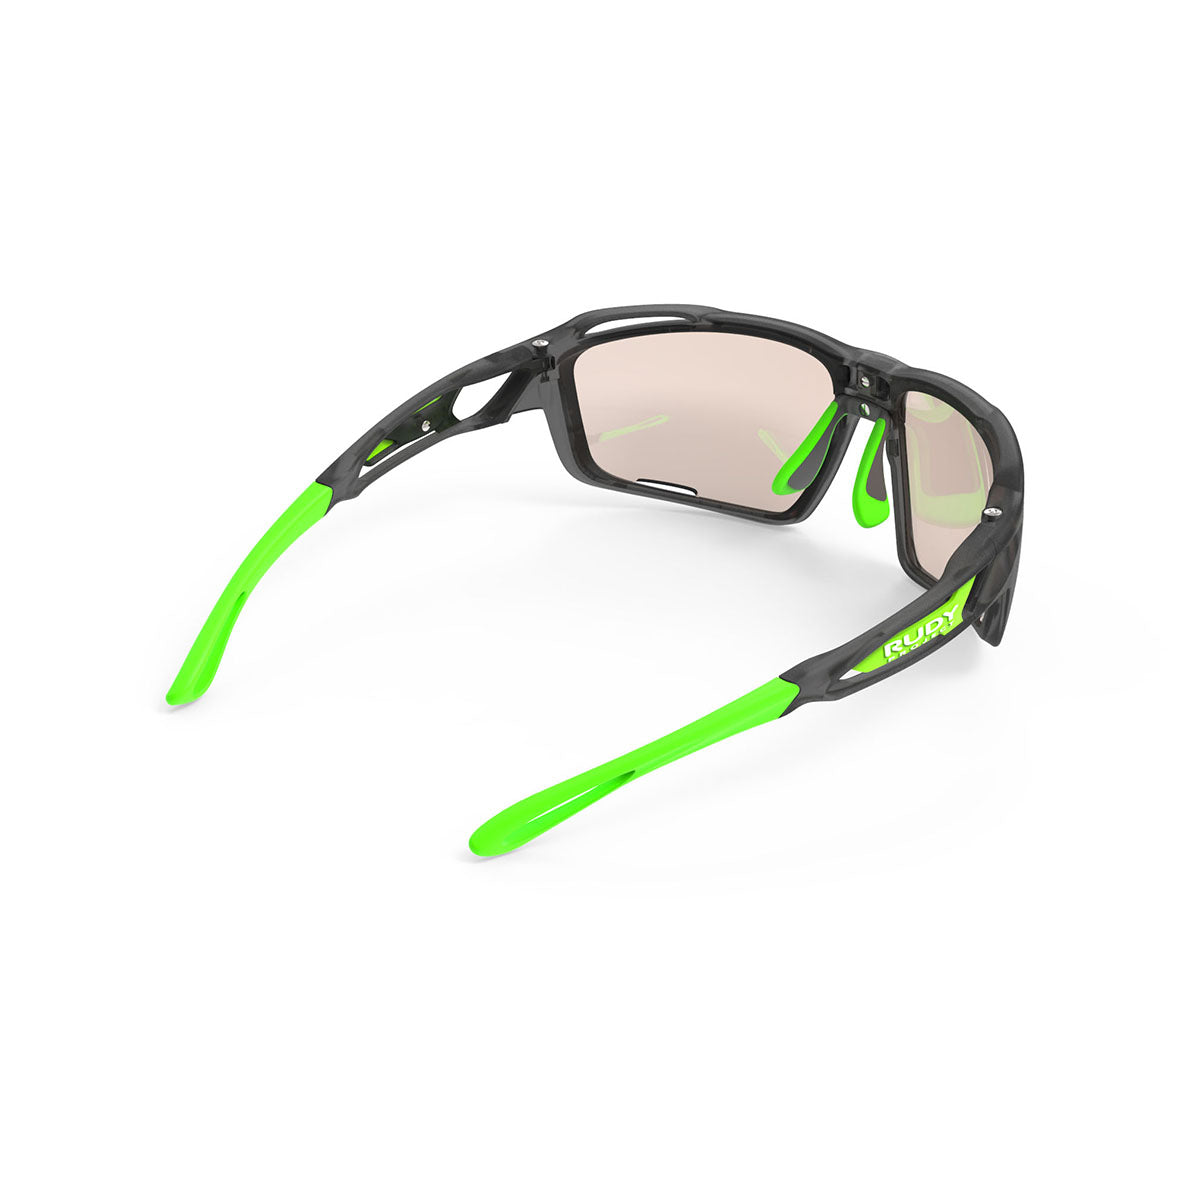 Rudy Project - Sintryx - frame color: Ice Graphite Matte - lens color: ImpactX-2 Photochromic Clear to Laser Brown - Bumper Color:  - photo angle: Top Back Angle Variant Hover Image